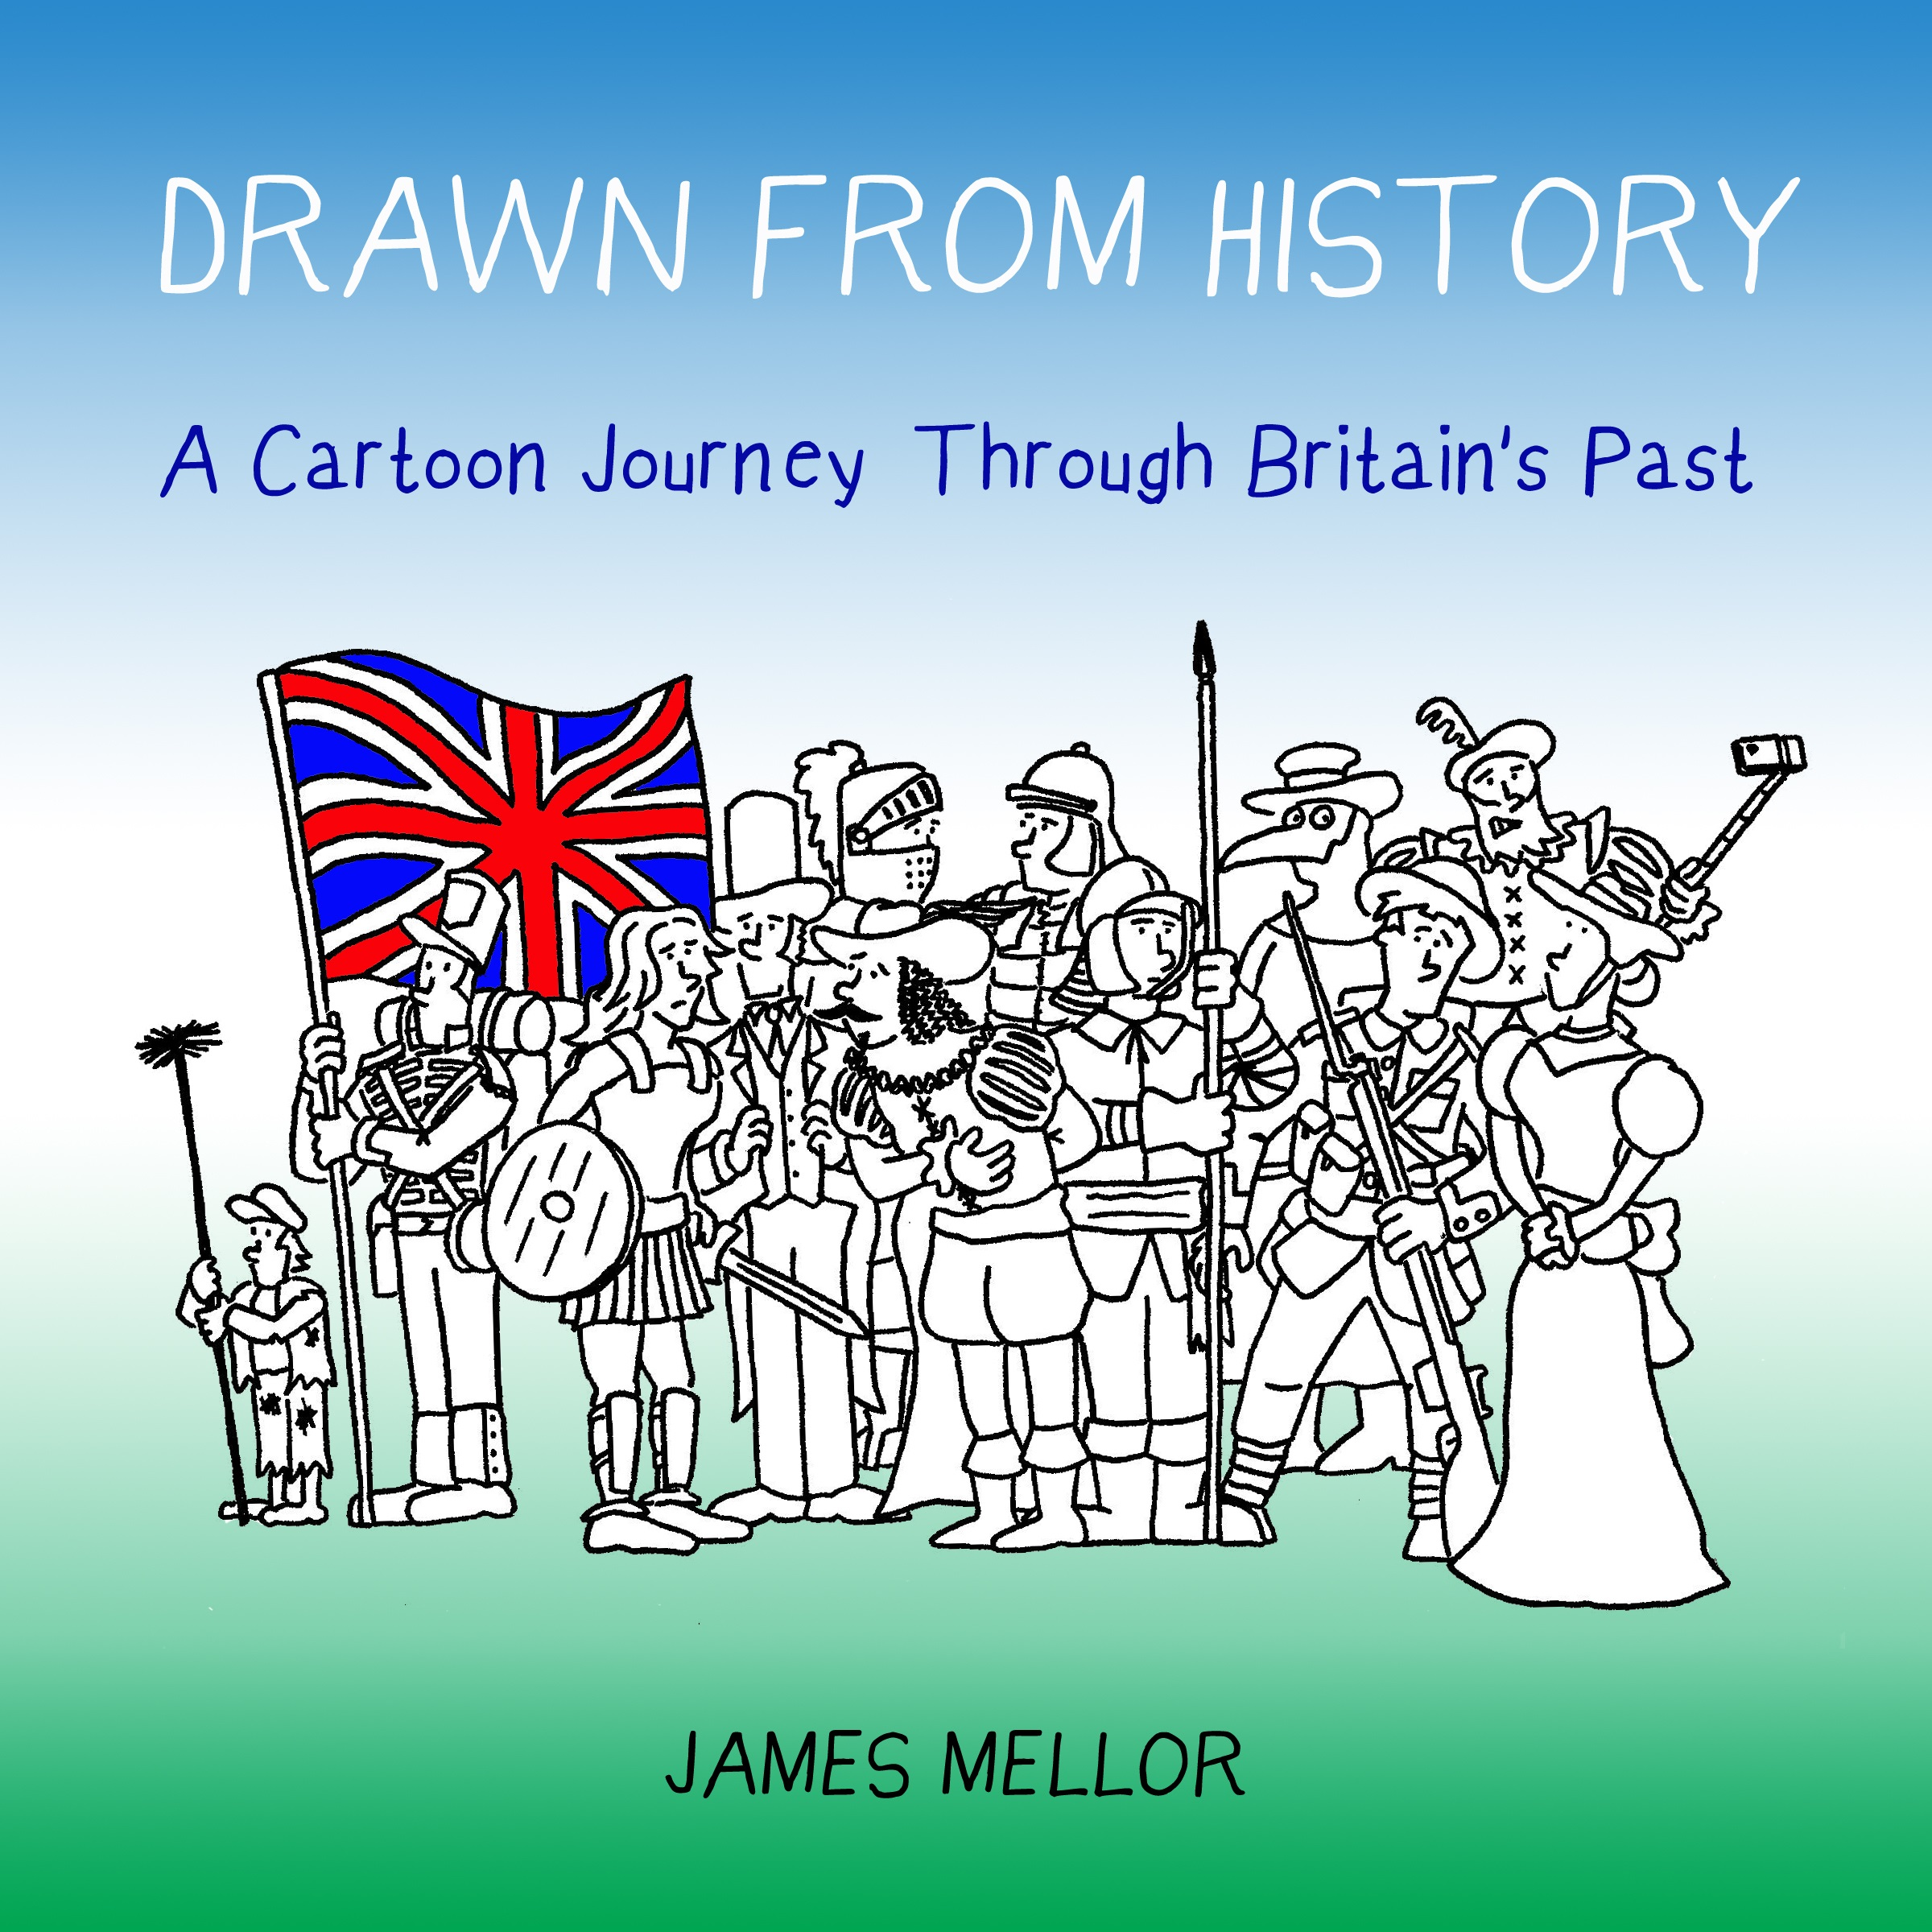 Drawn From History by James Mellor